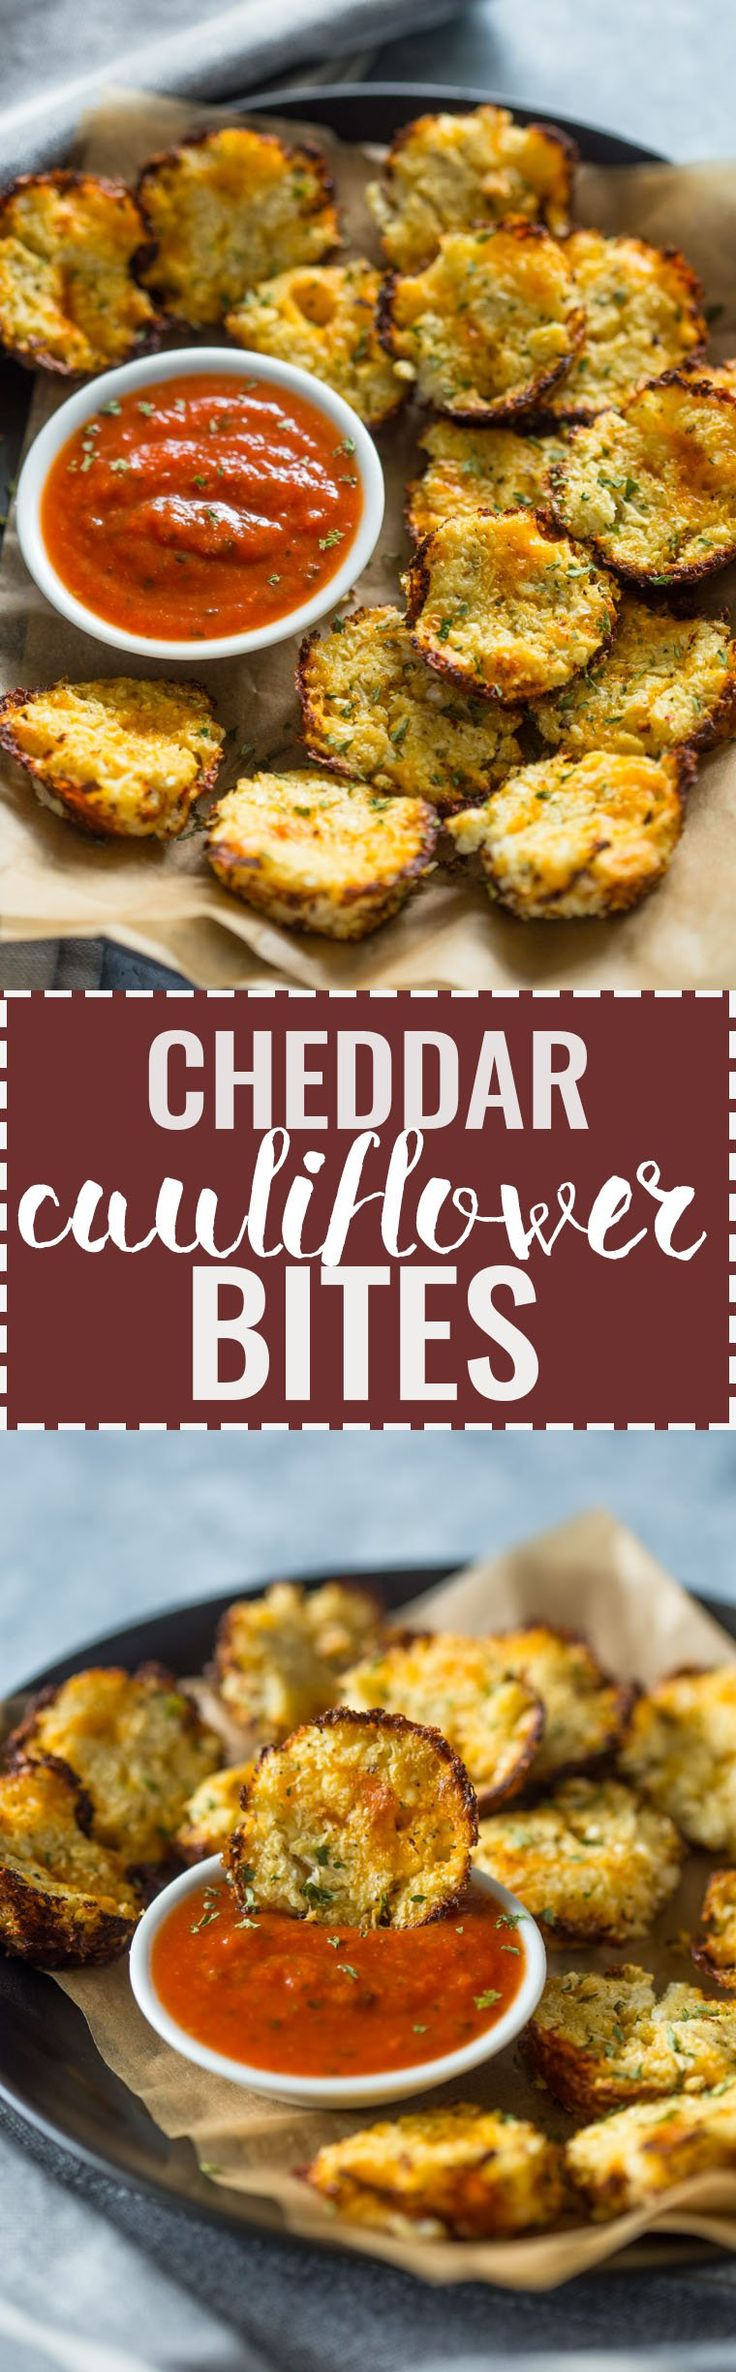 3 Ingredient Baked Cheddar Cauliflower Bites (mini party appetizers muffin tins)